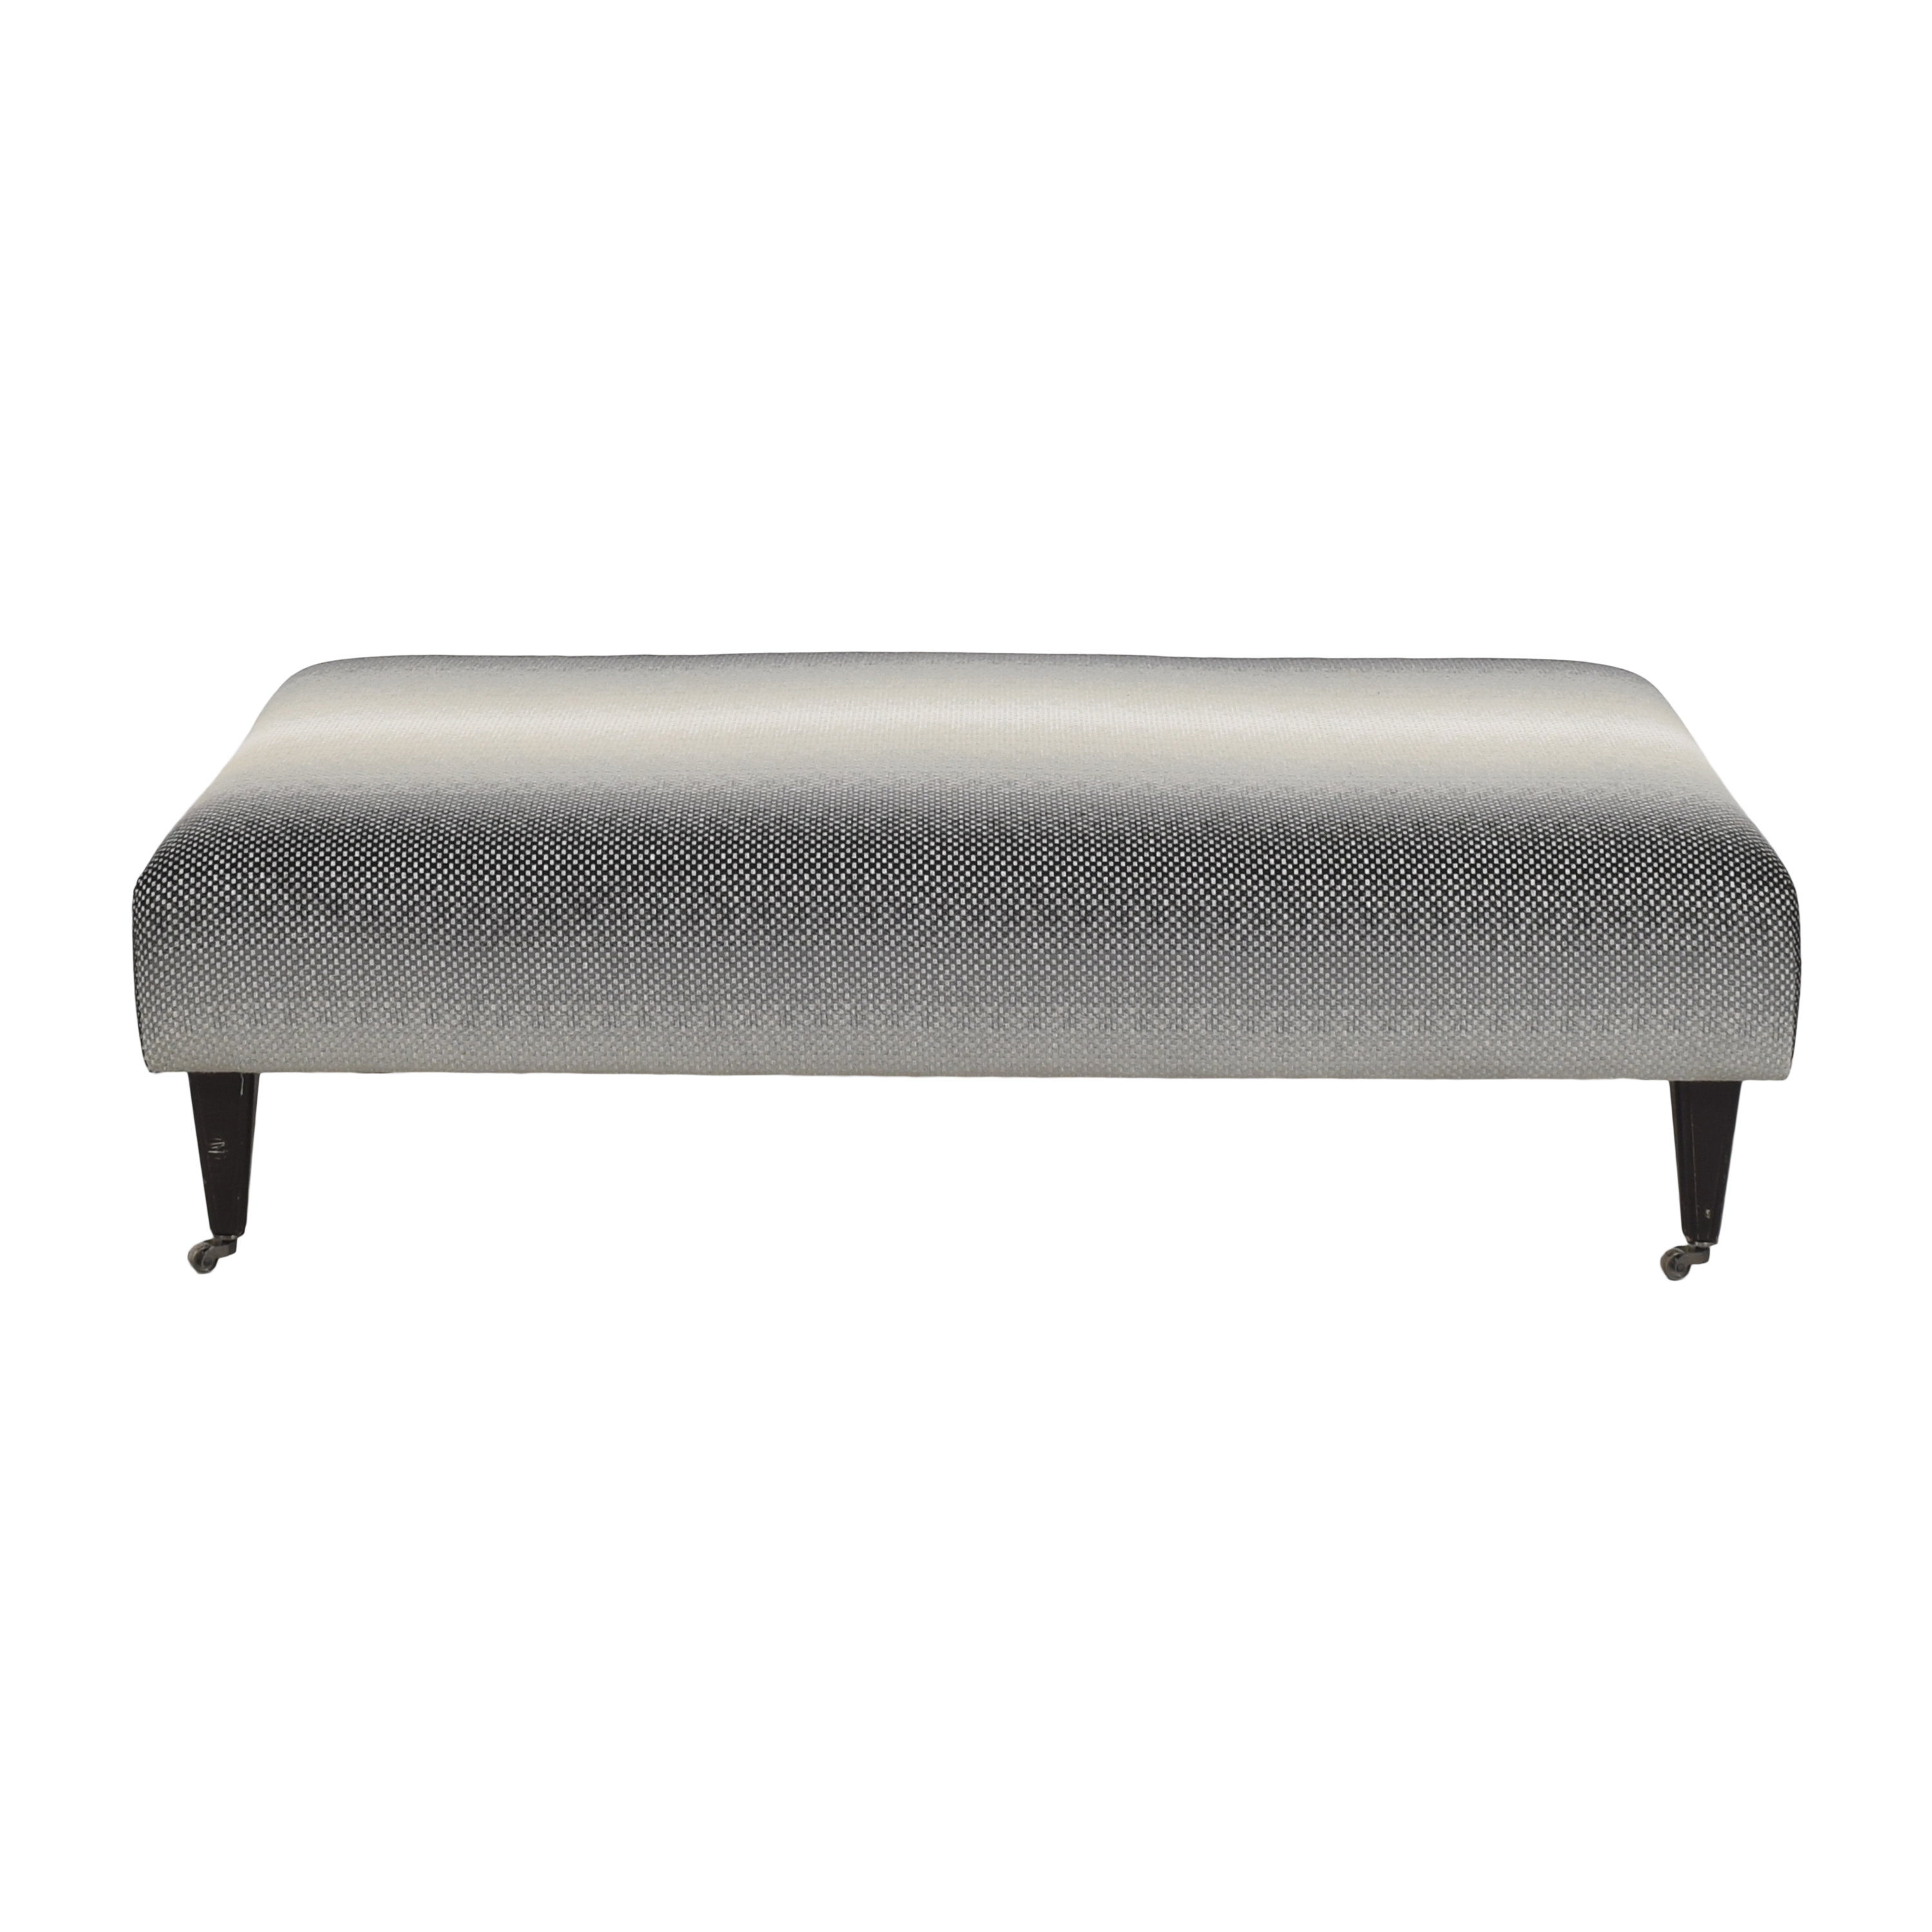 Gradient Upholstered Ottoman ma